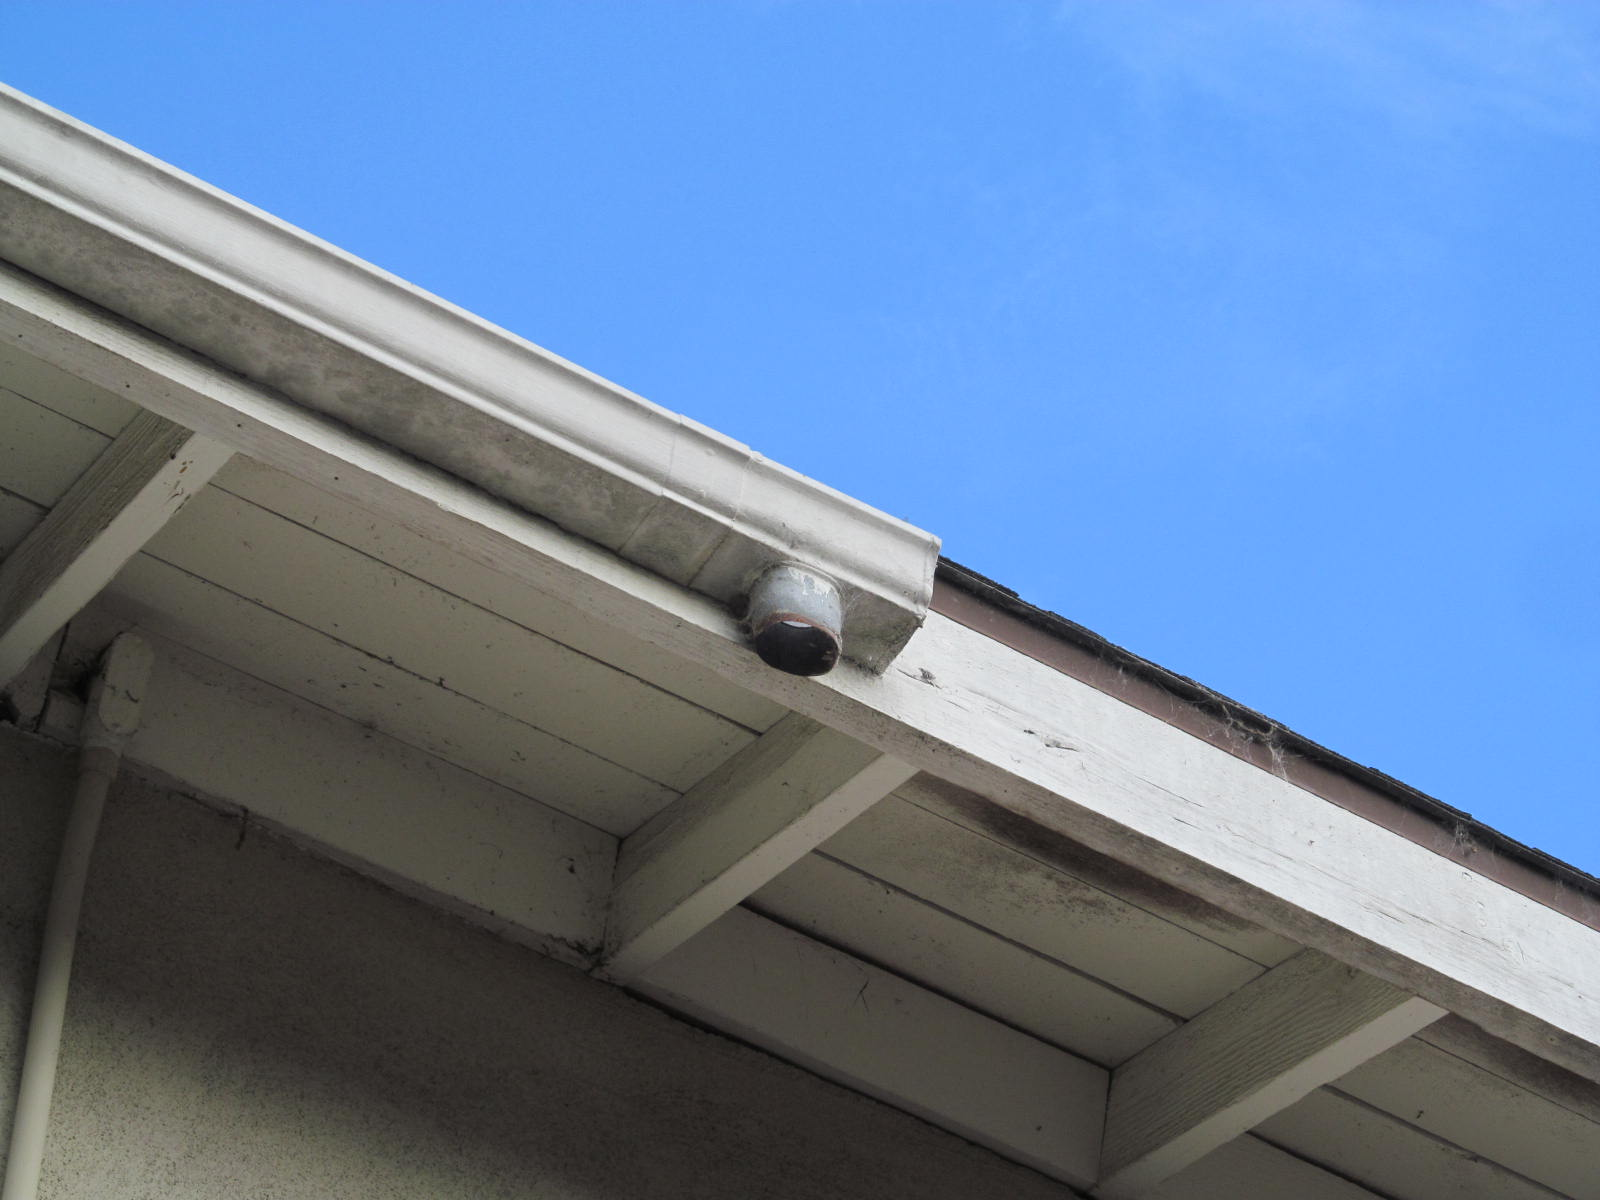 Leaking gutters repair and check for siding damage for Leaking roof gutter